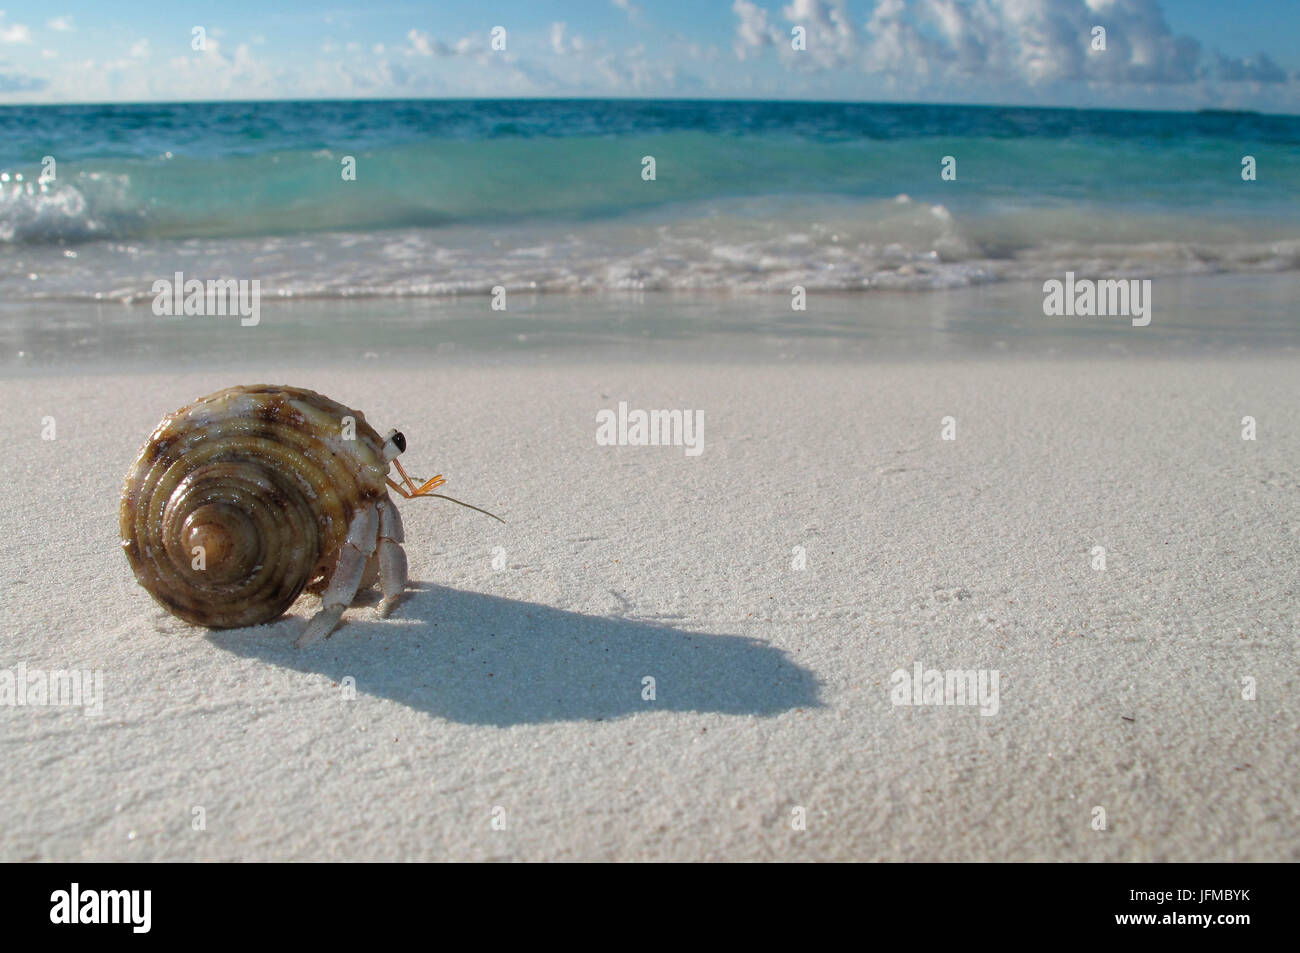 Maldive beach and sea with hermit crab - Stock Image